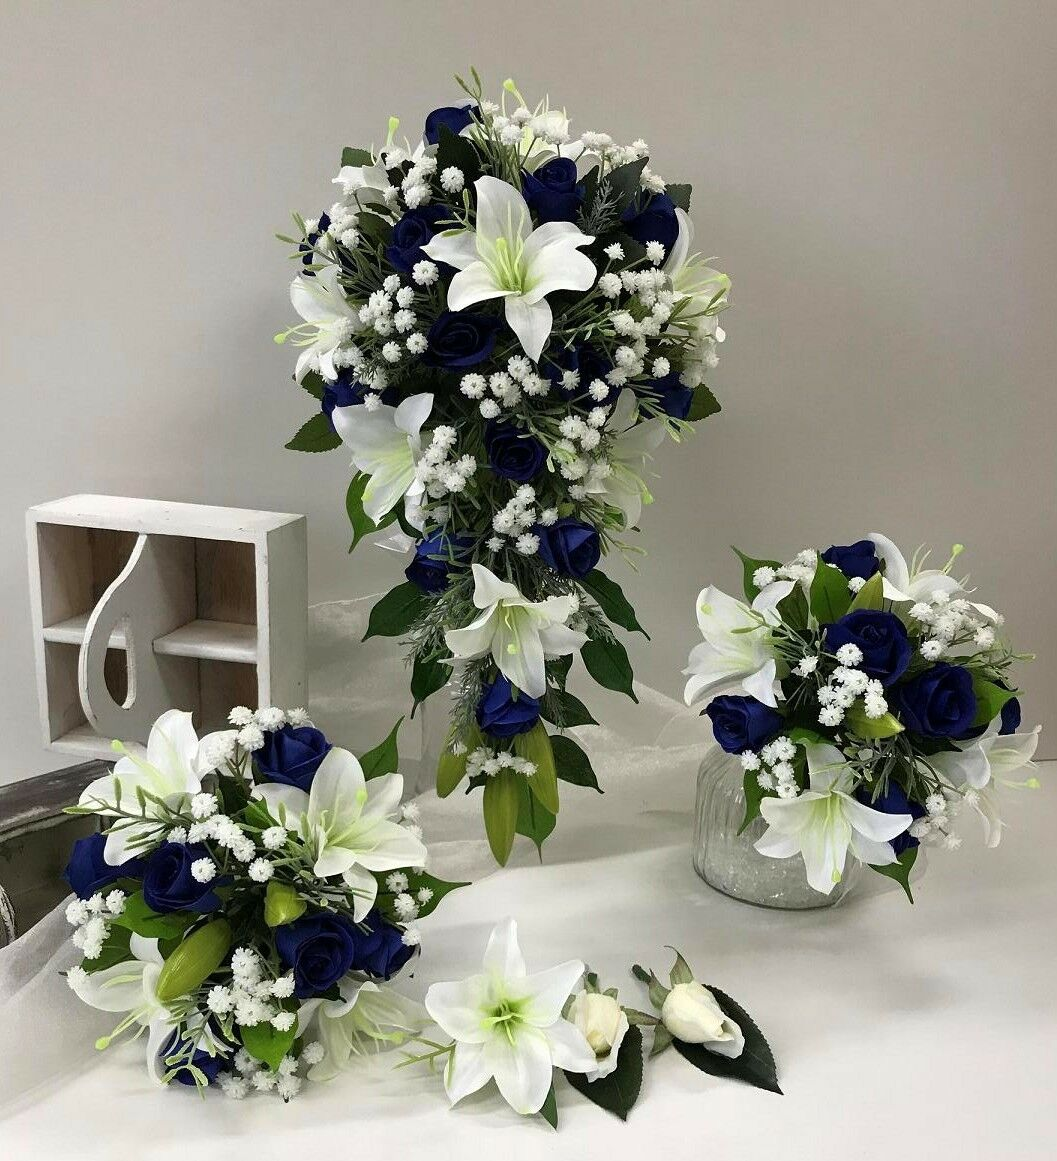 Silk Wedding Bouquets White Lily Navy Blue Roses White Gyp Teardrop